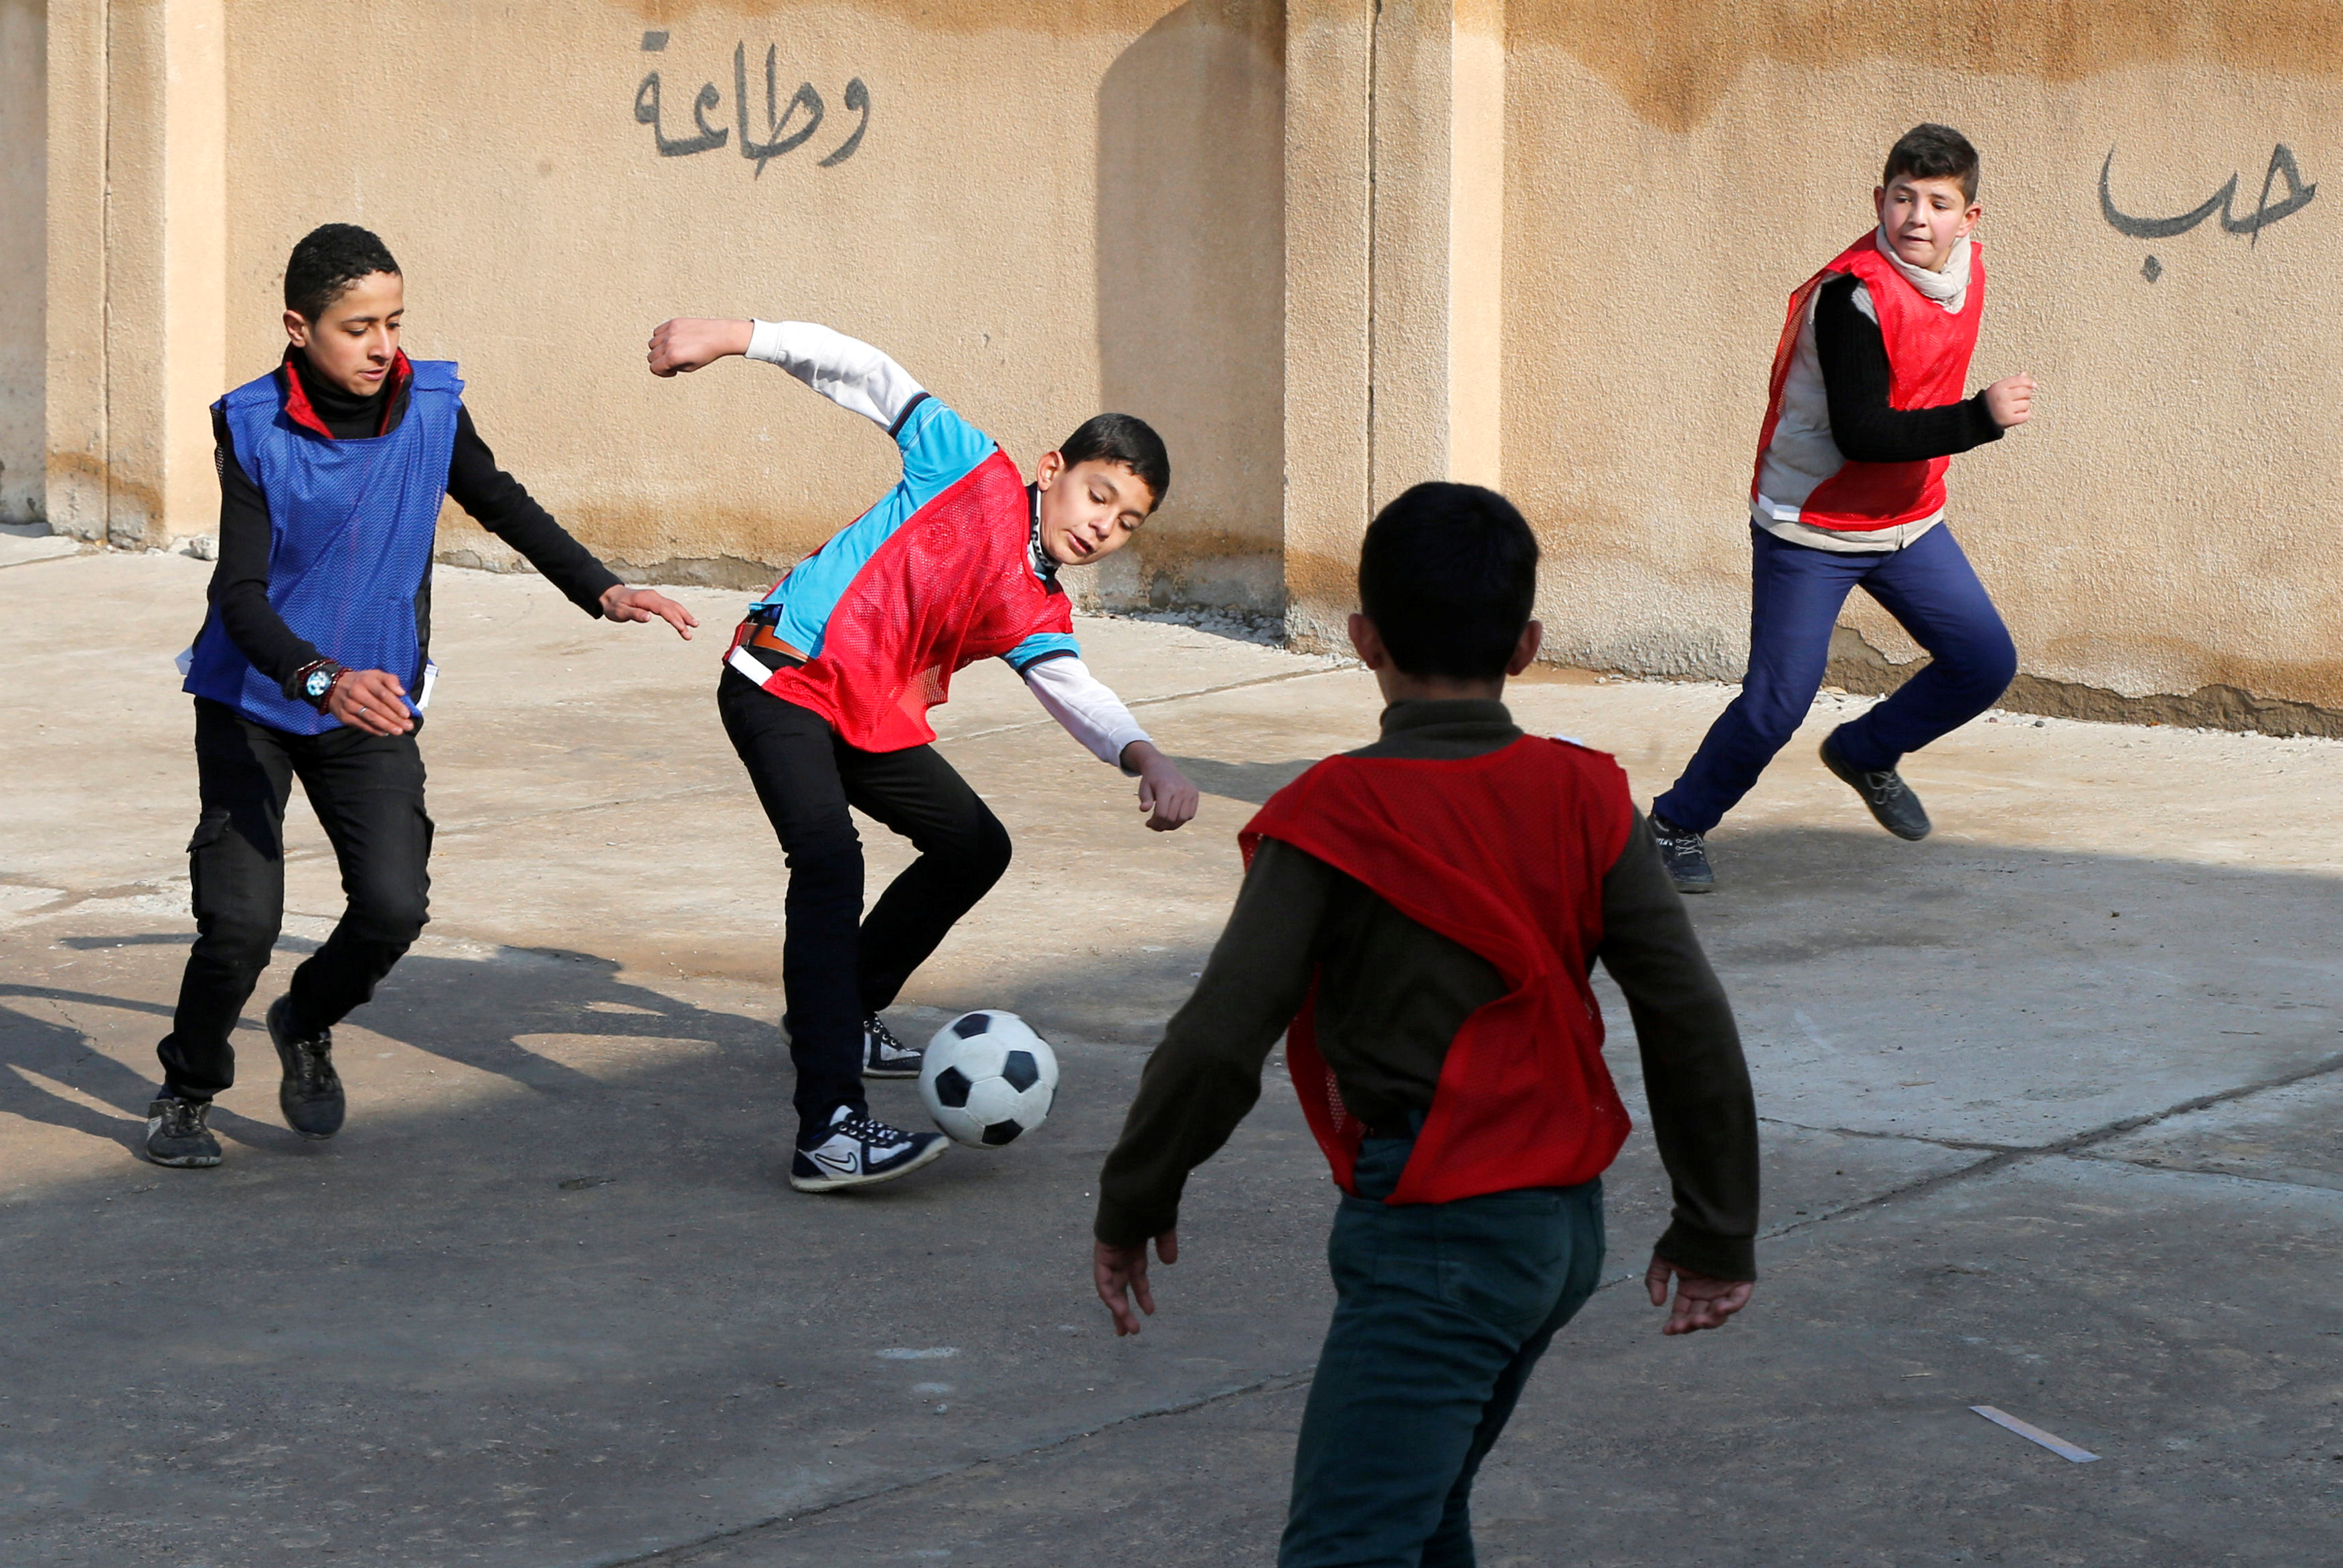 Children played soccer in Mosul as the city gradually returned to normal. Photo by Muhammad Hamed/Reuters